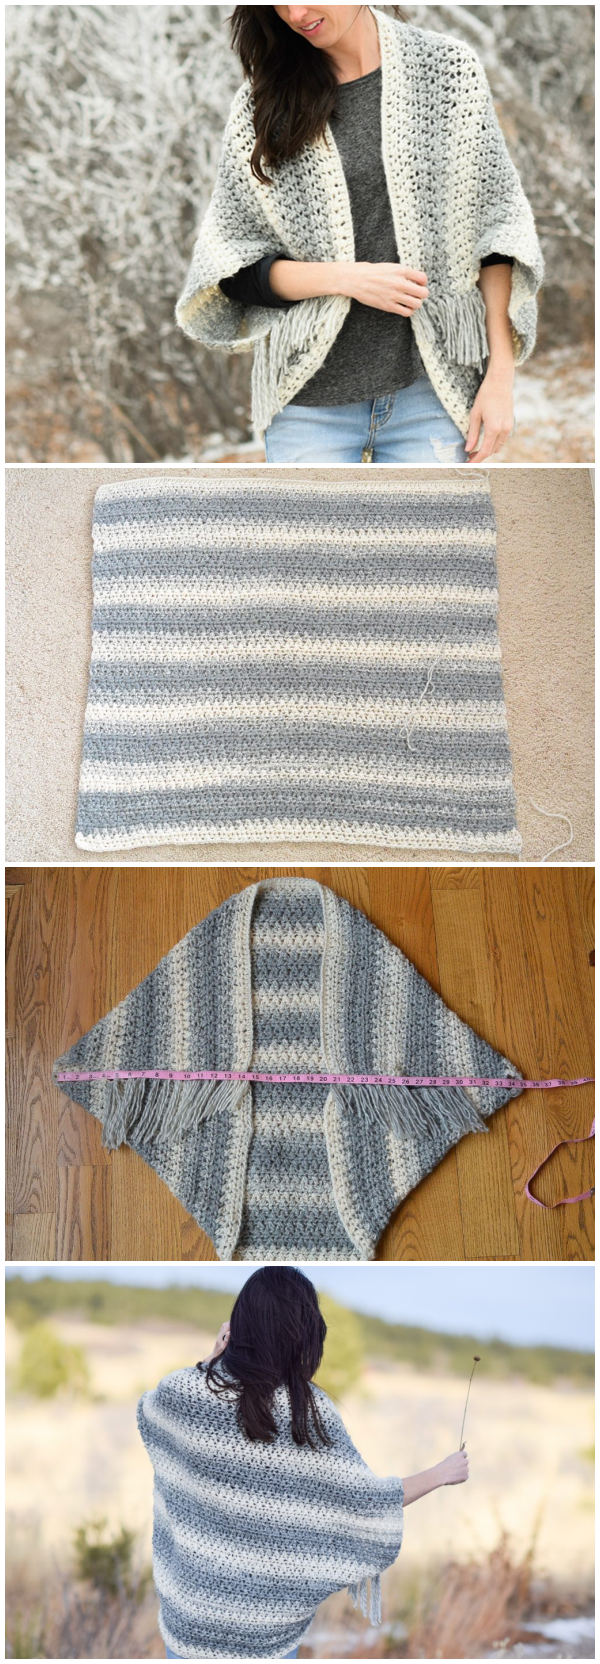 Light Frost Easy Blanket Sweater Crochet Pattern